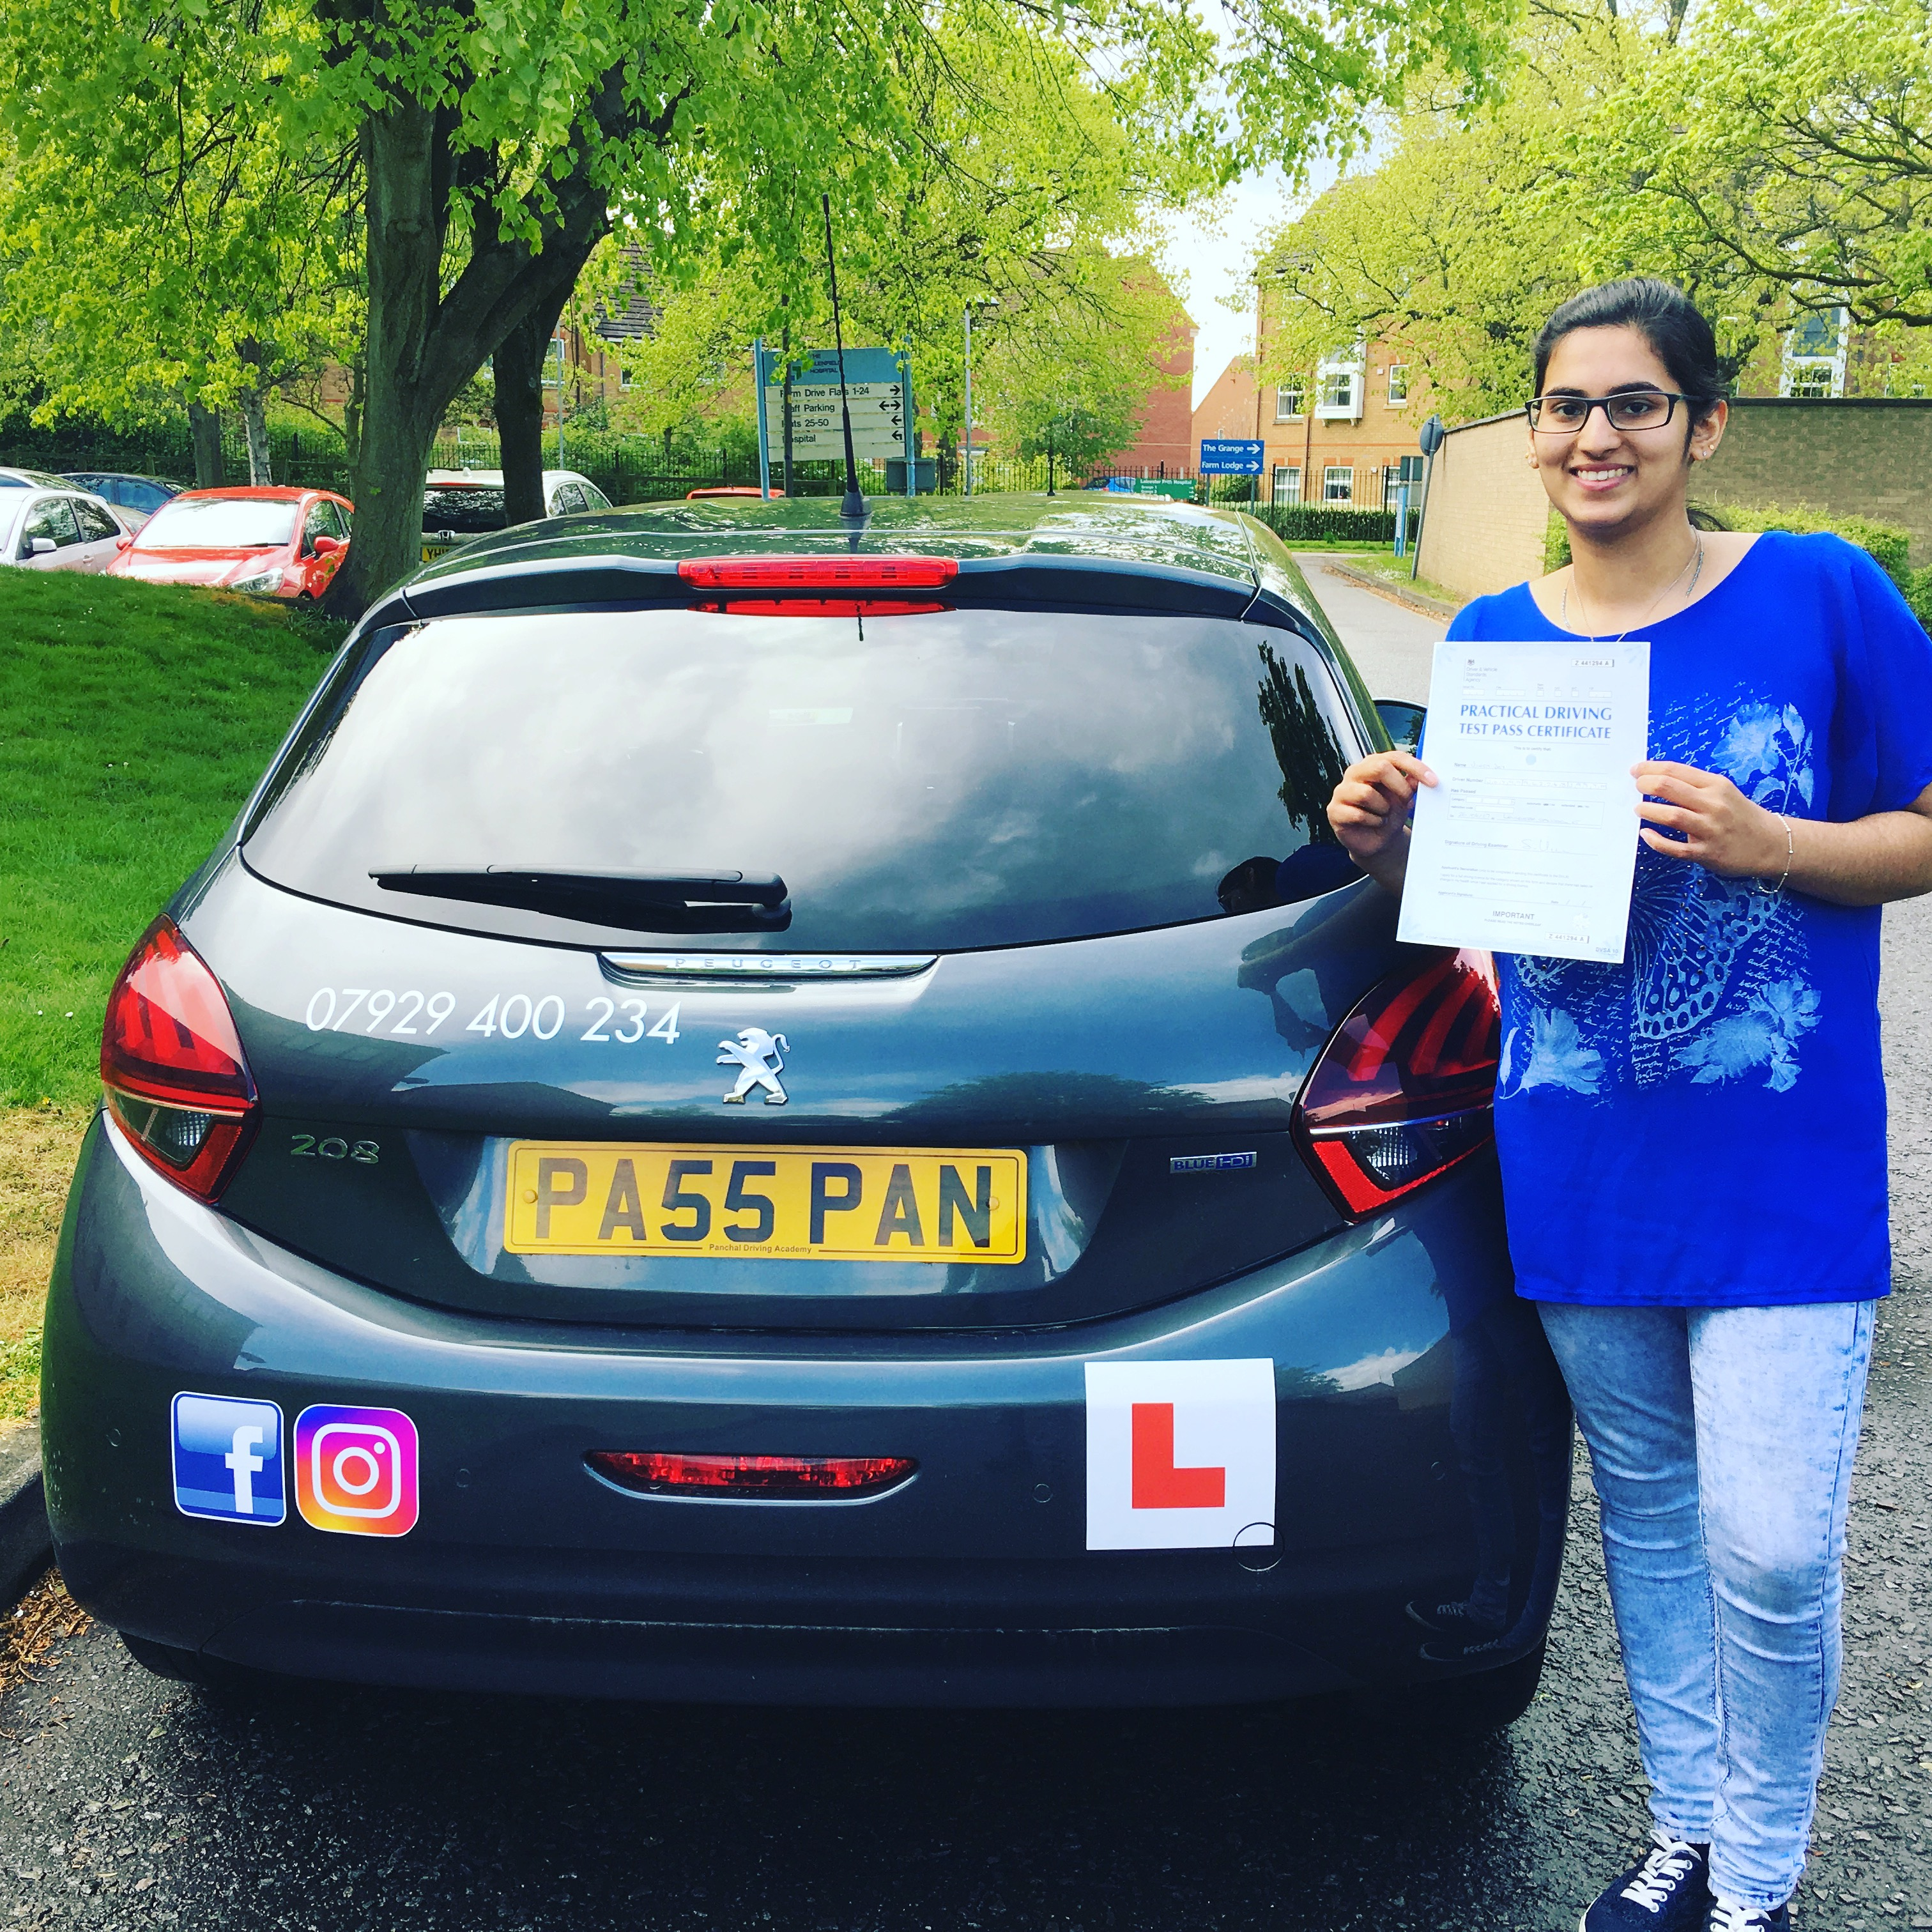 driving lessons leicester - Panchal Driving Academy - Jincy